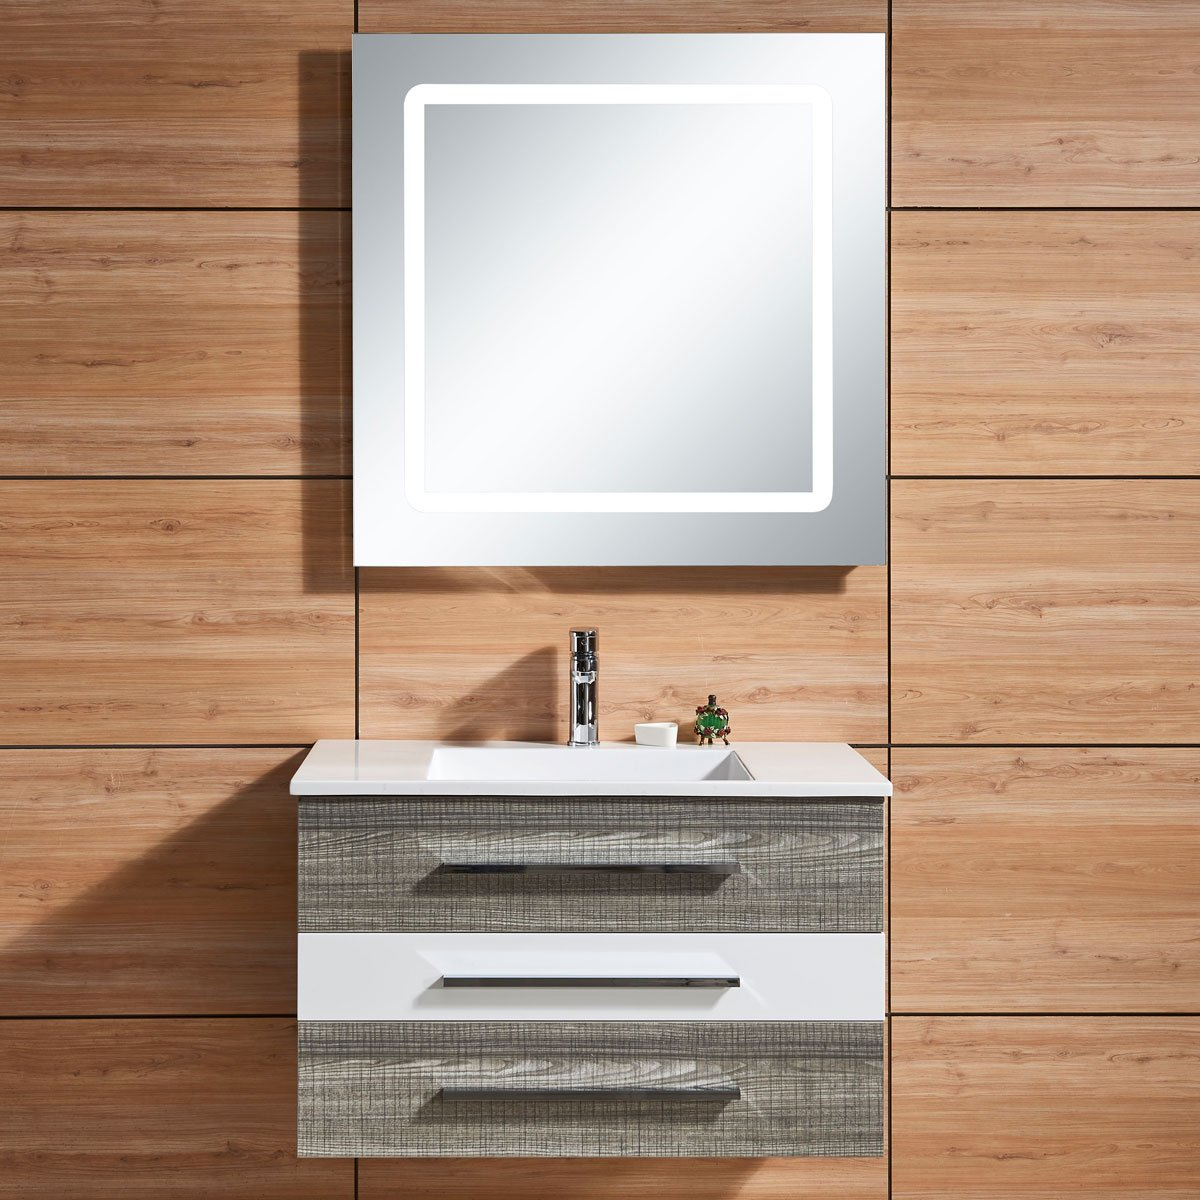 Decoraport 31 In. Wall Mount Bathroom Vanity Set with Single Sink and LED Mirror (DK-669800)